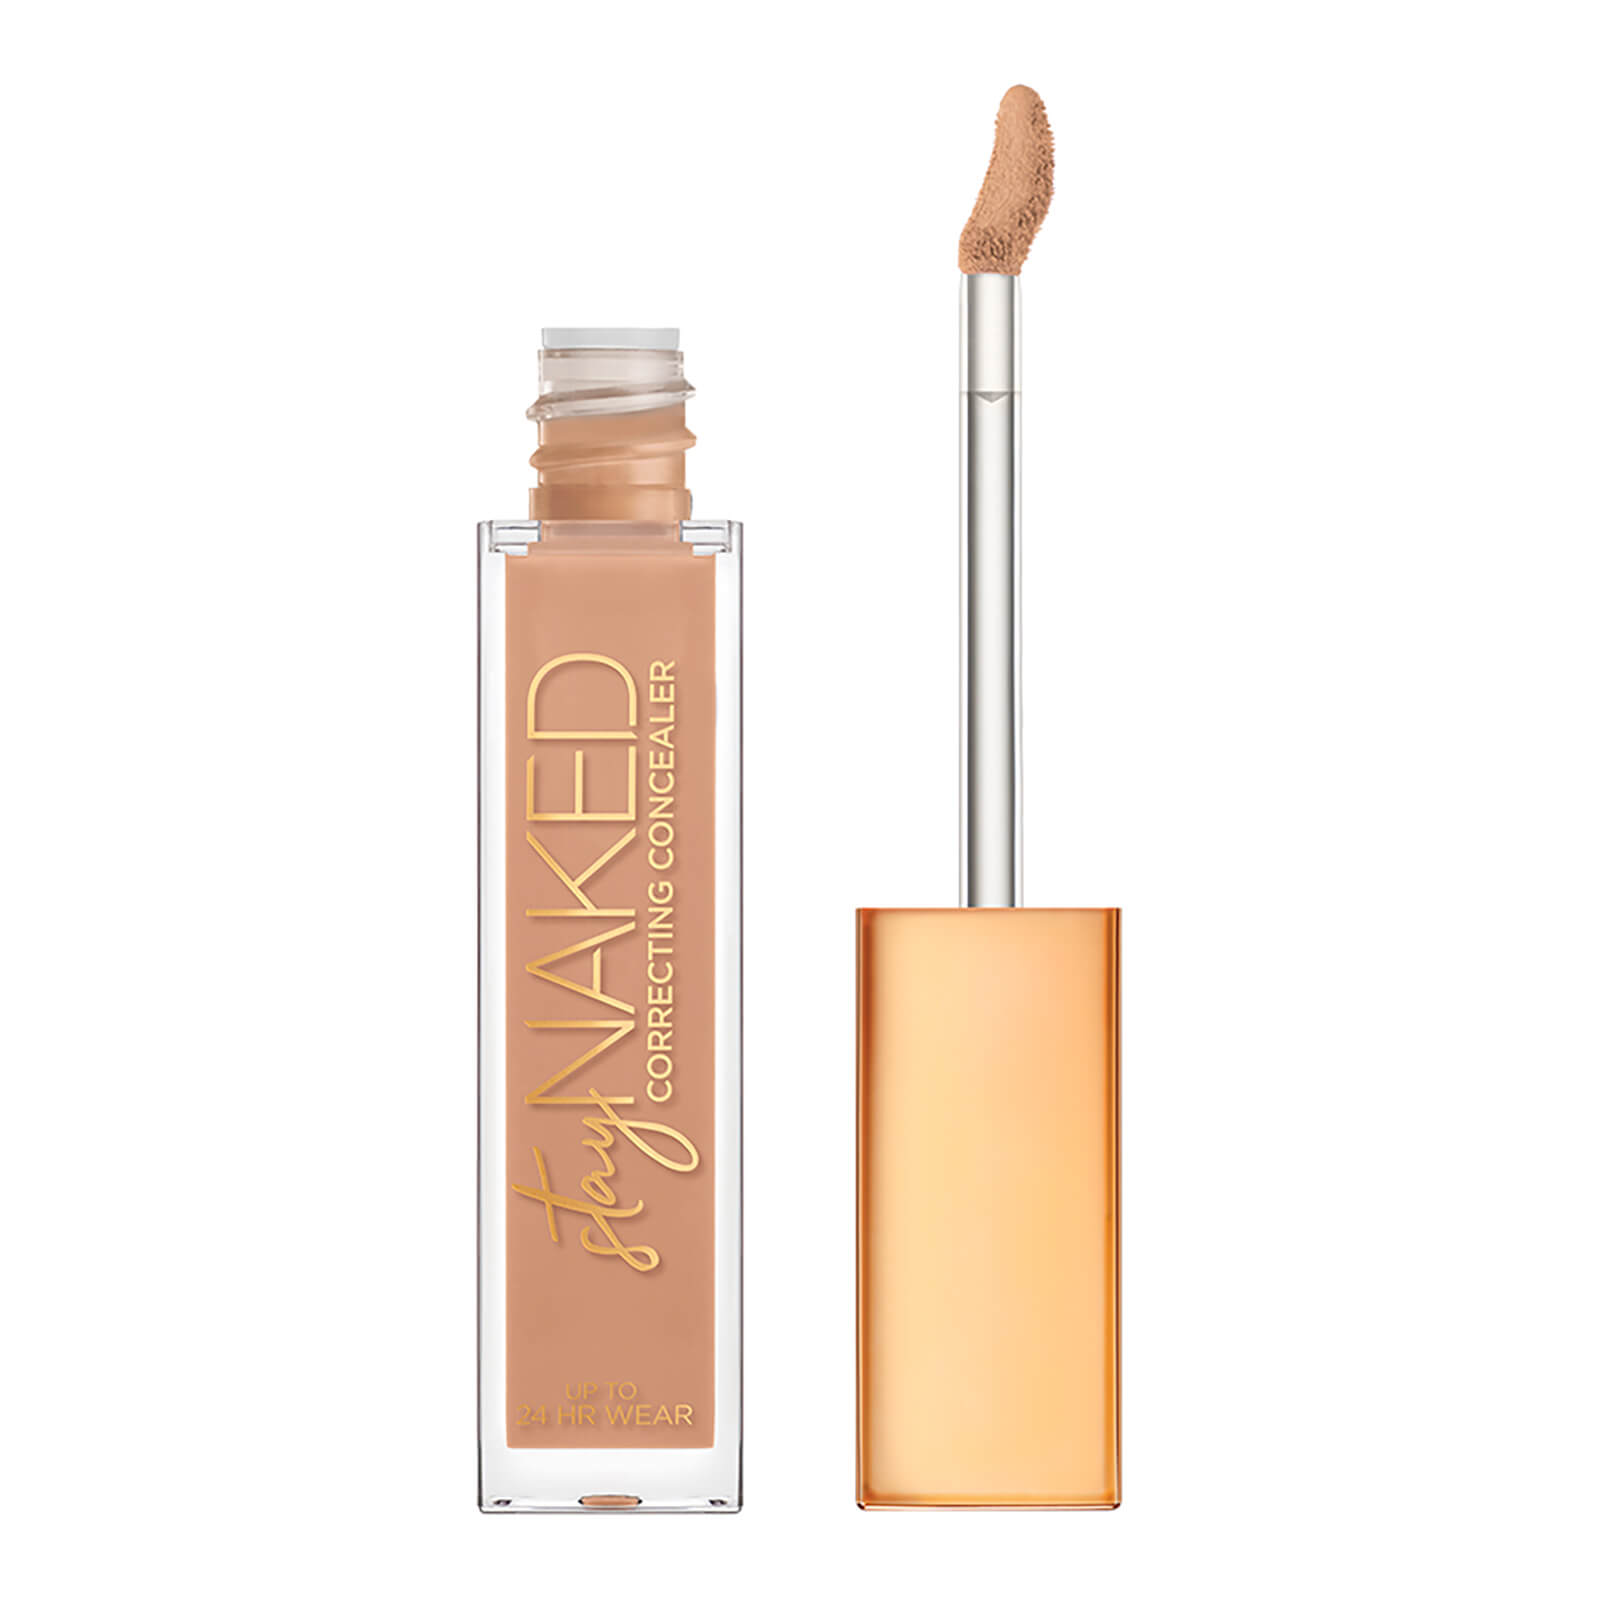 Urban Decay Stay Naked Concealer (Various Shades) - 23 20CP